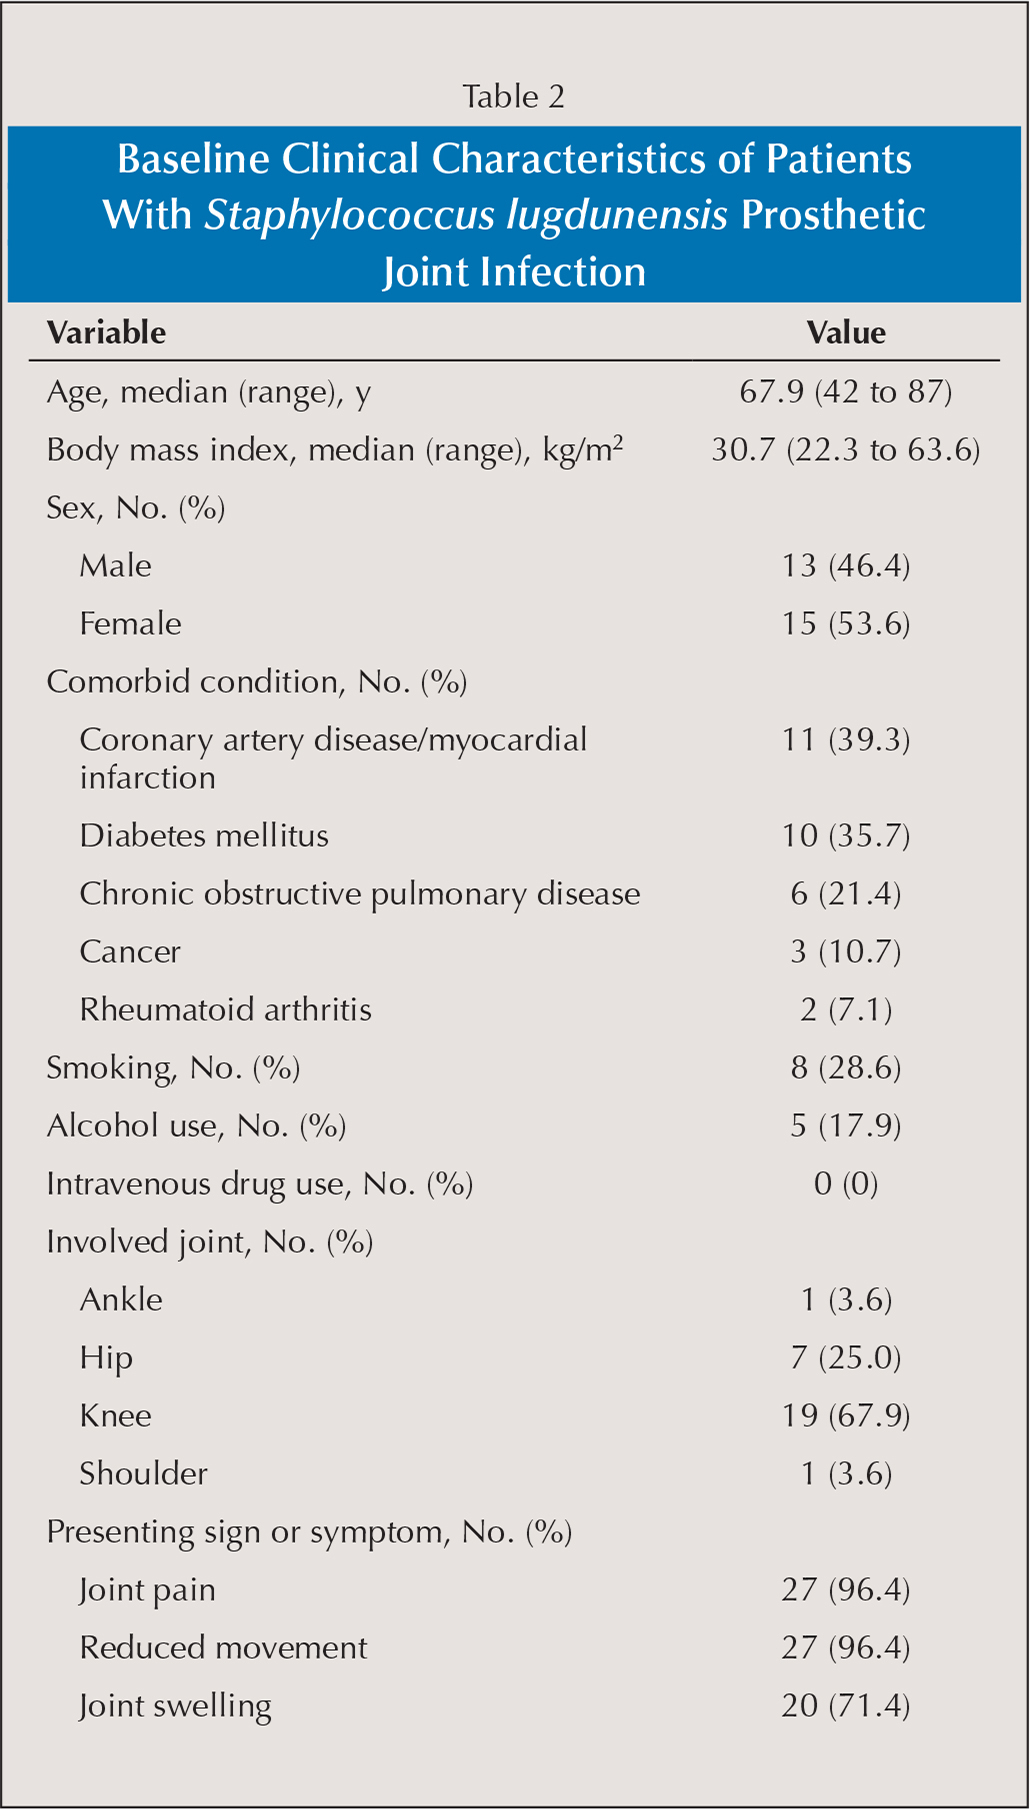 Baseline Clinical Characteristics of Patients With Staphylococcus lugdunensis Prosthetic Joint Infection